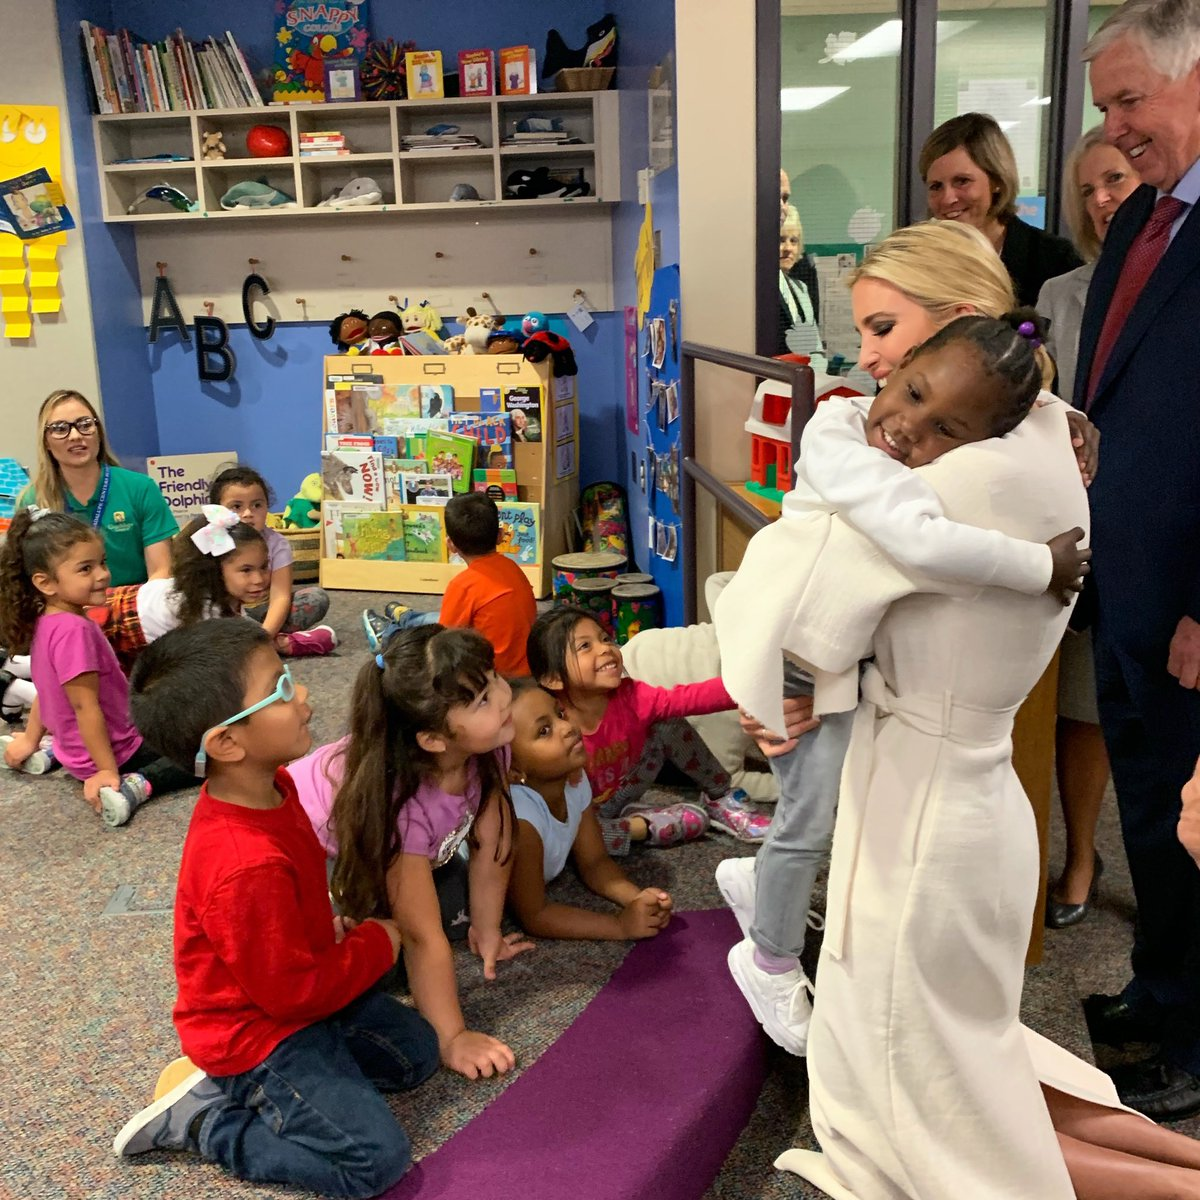 Kansas City certainly gave Sec. Azar, Sen. Blunt, Gov. Parson and me a warm welcome! Hearing from parents, administrators (and kids!) alike about the challenges faced in the child care space was enlightening and this great feedback will inform our work back in DC.